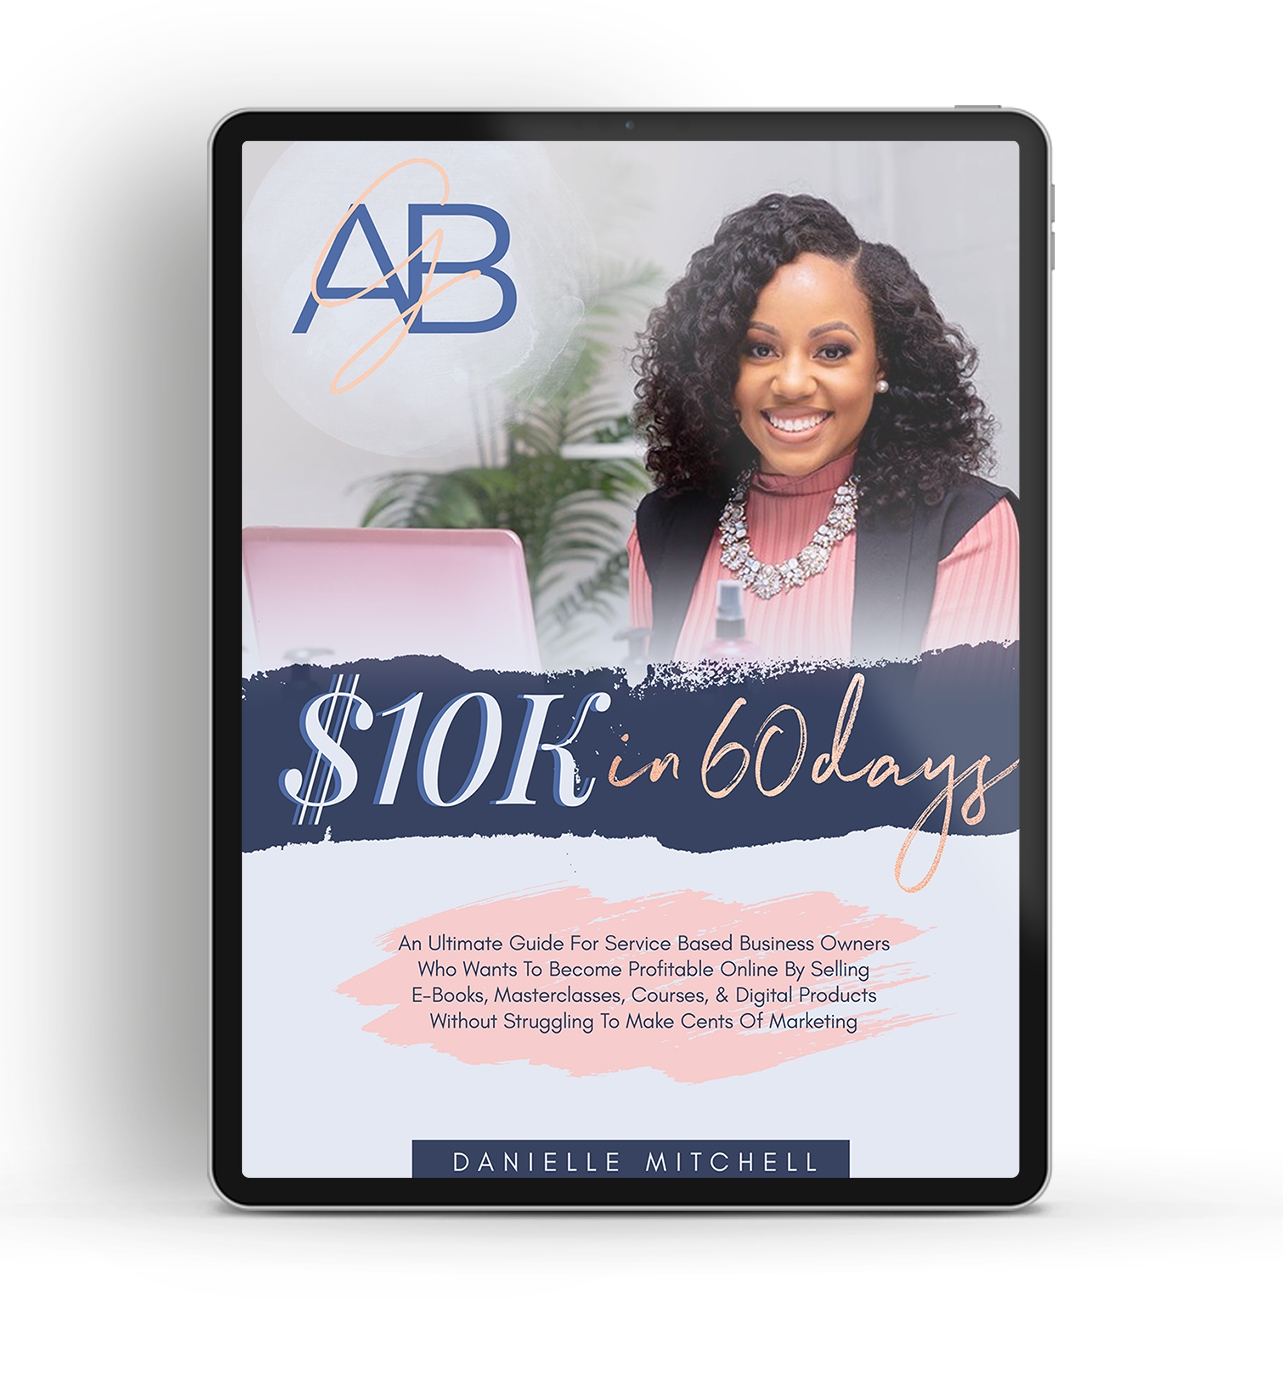 $10K In 60 Days E-Book (Digital Download)